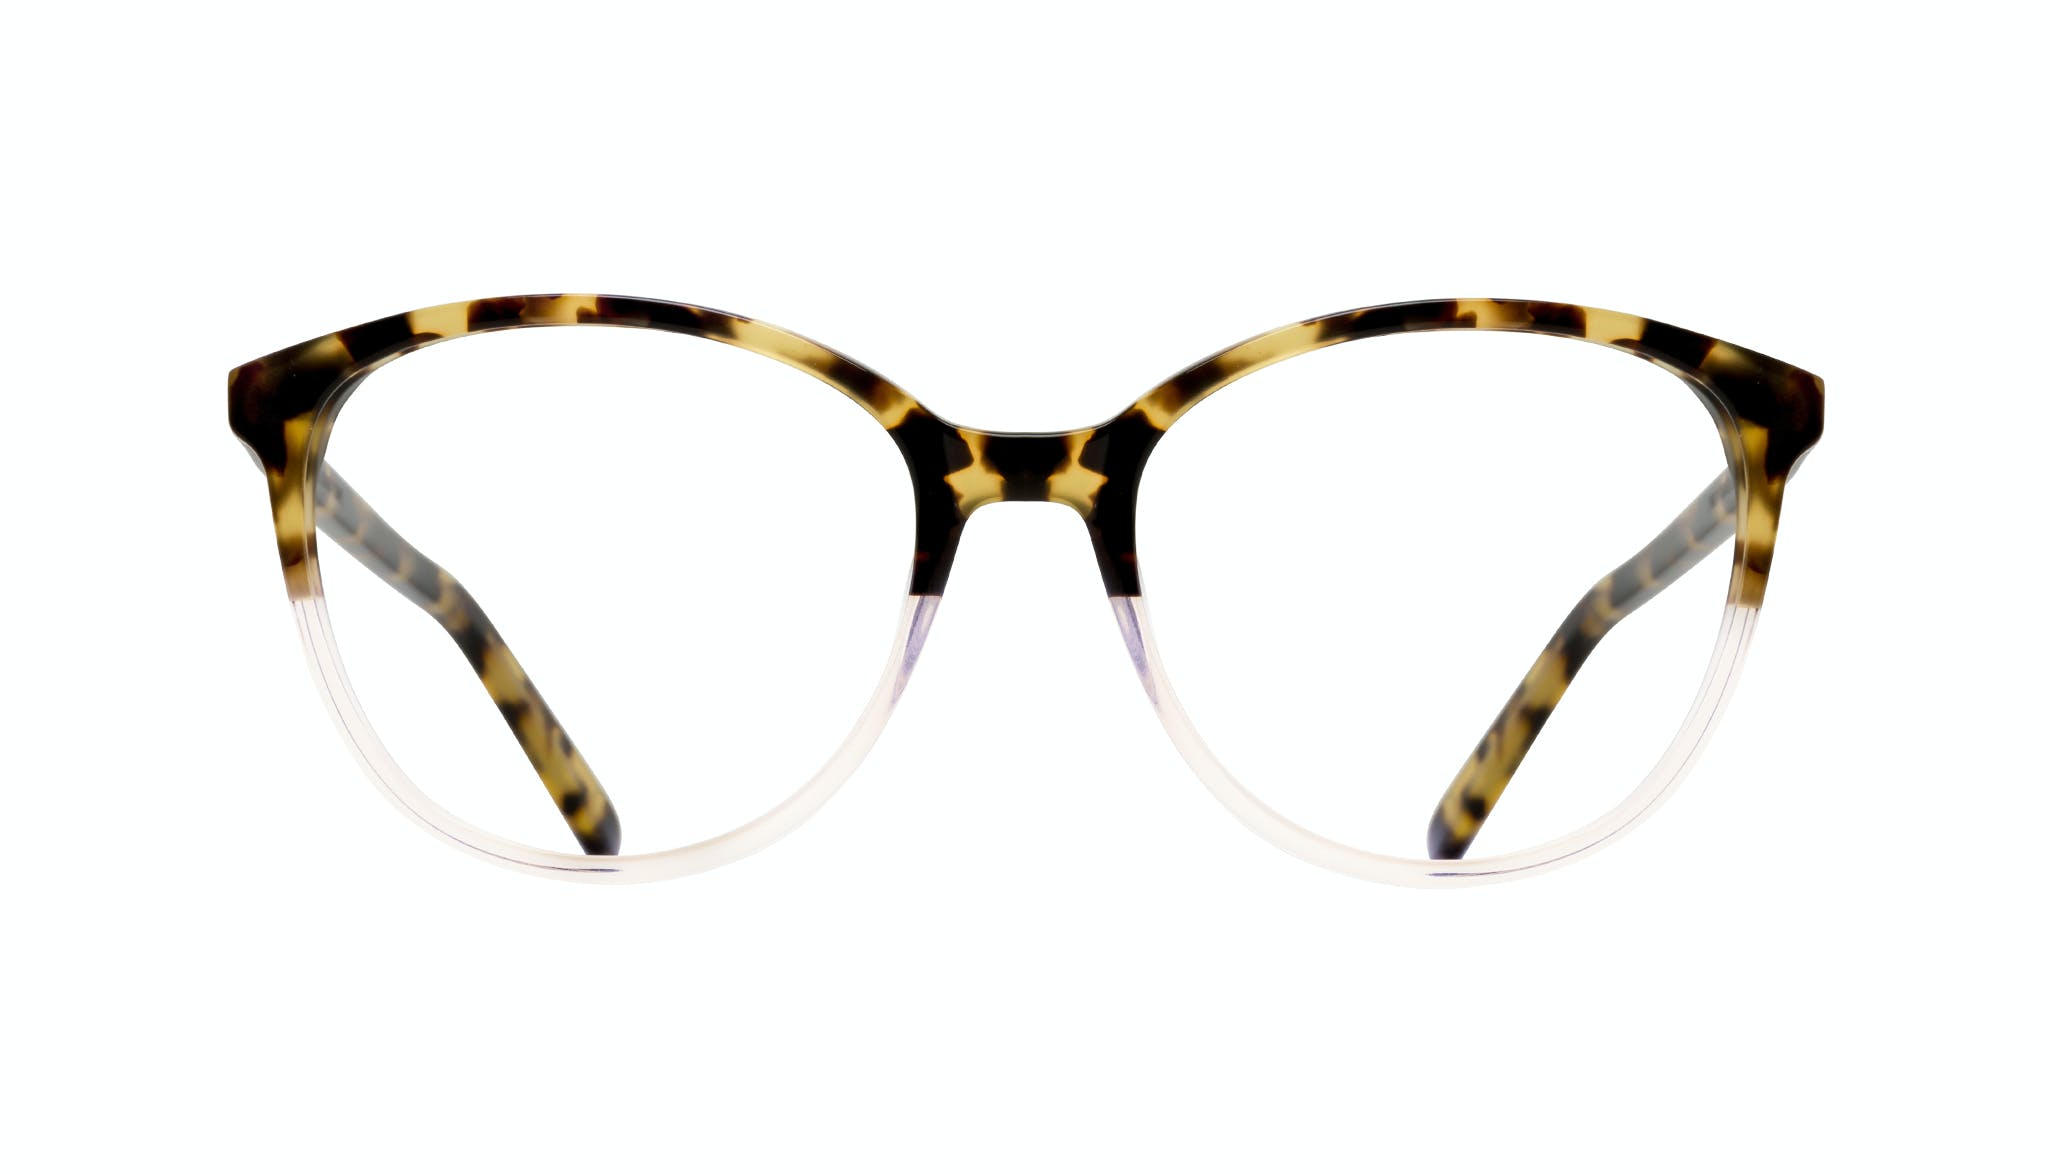 Affordable Fashion Glasses Cat Eye Round Eyeglasses Women Imagine Blond Tort